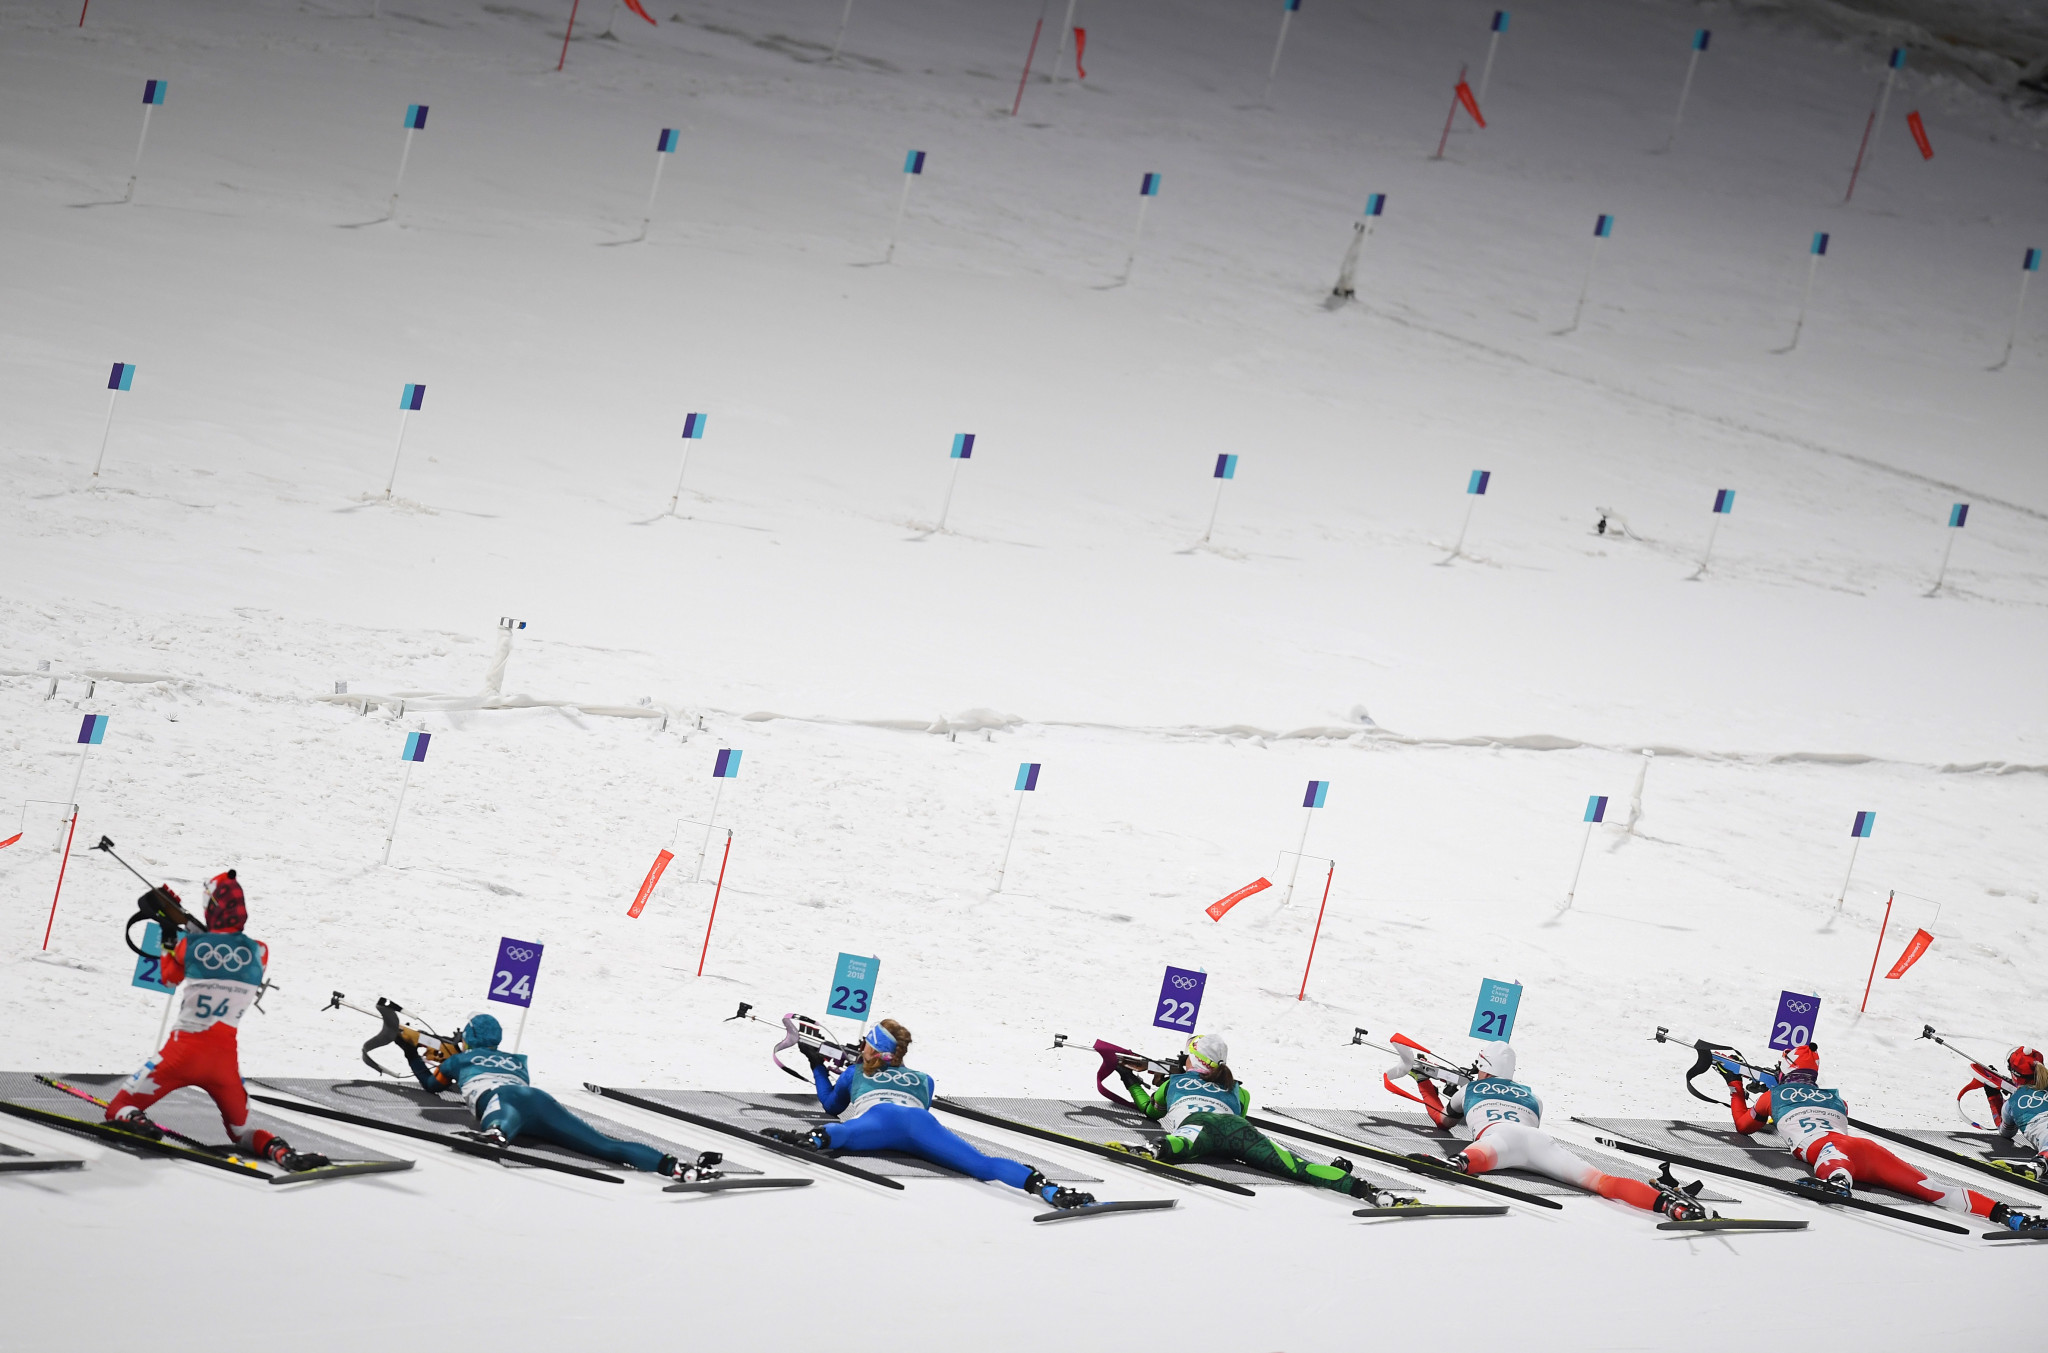 The Russian Biathlon Union was demoted to provisional IBU status in December 2017 ©Getty Images